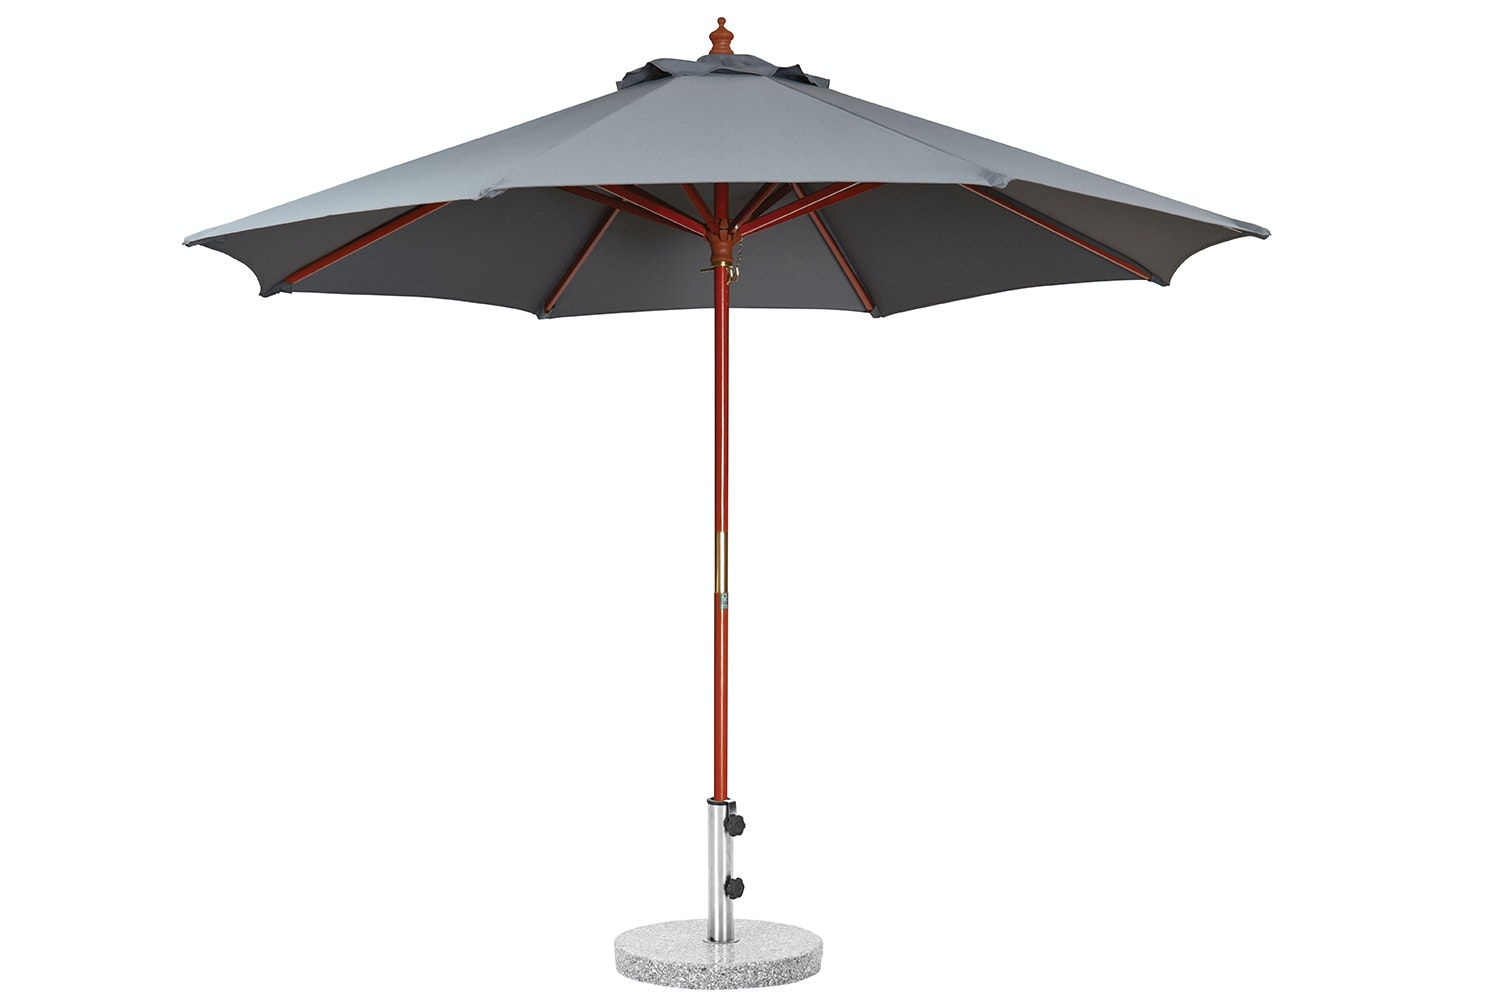 Kosmo 3.5m Black Outdoor Umbrella with 25kg Granite Base by Peros